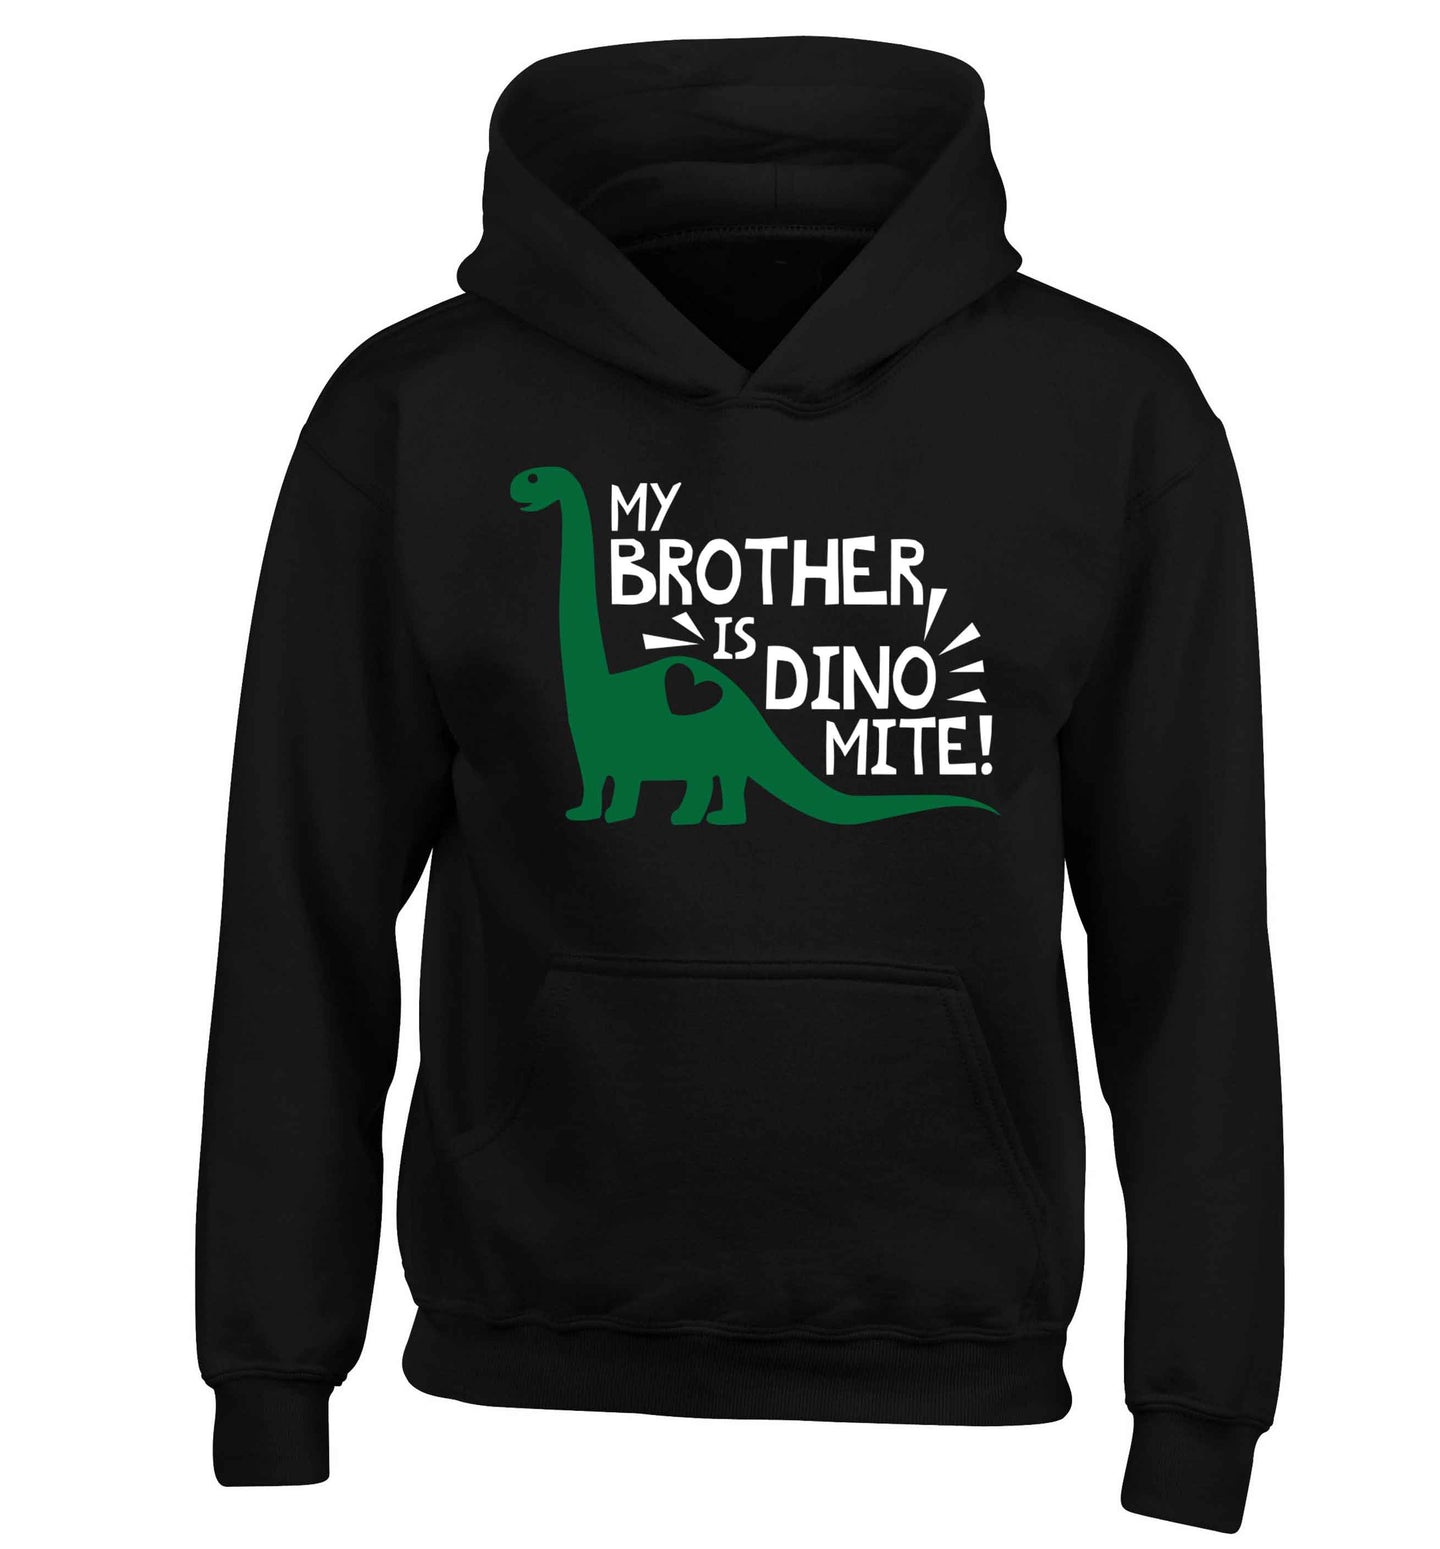 My brother is dinomite! children's black hoodie 12-13 Years